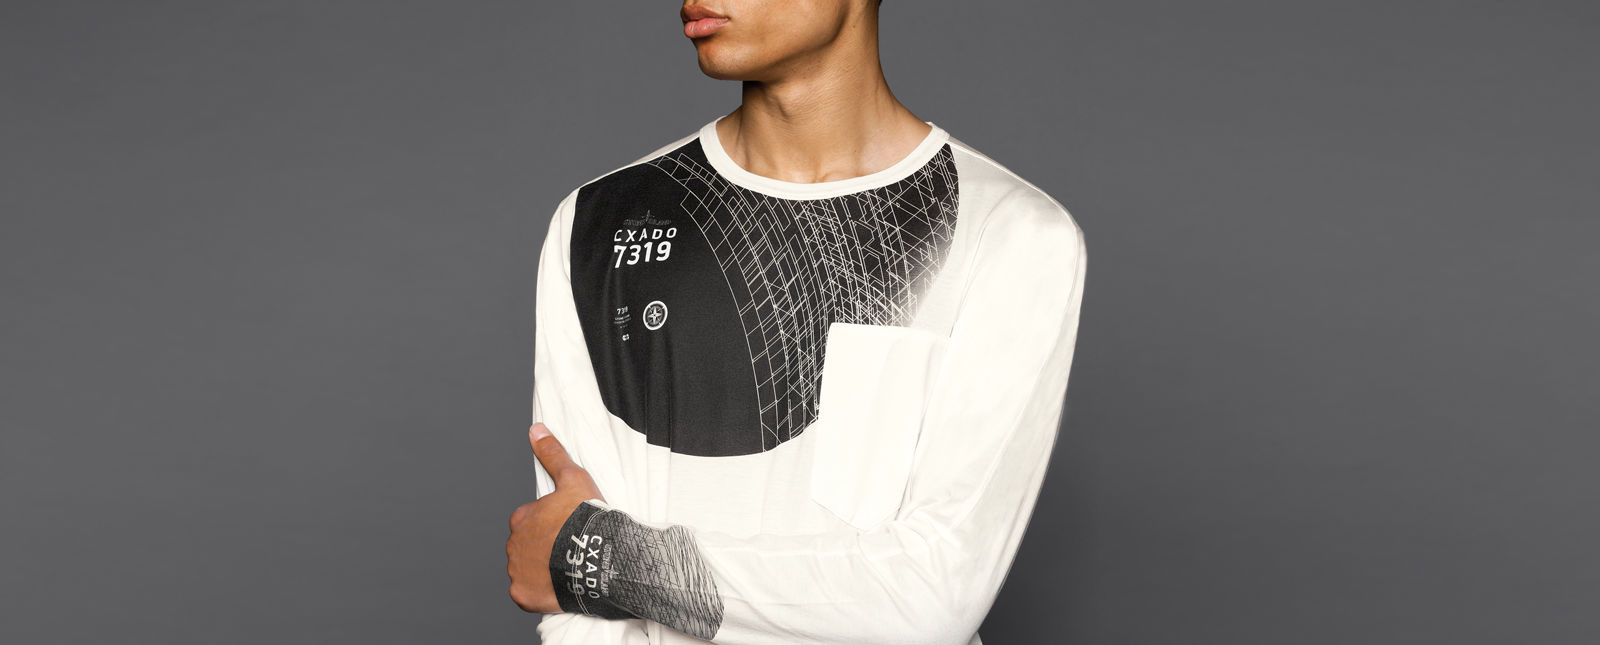 """Model wearing a  white long-sleeved T-shirt with black  inserts at the chest and sleeve cuffs featuring a pattern of white lines, logos, and \""""CXADO 7319\"""""""